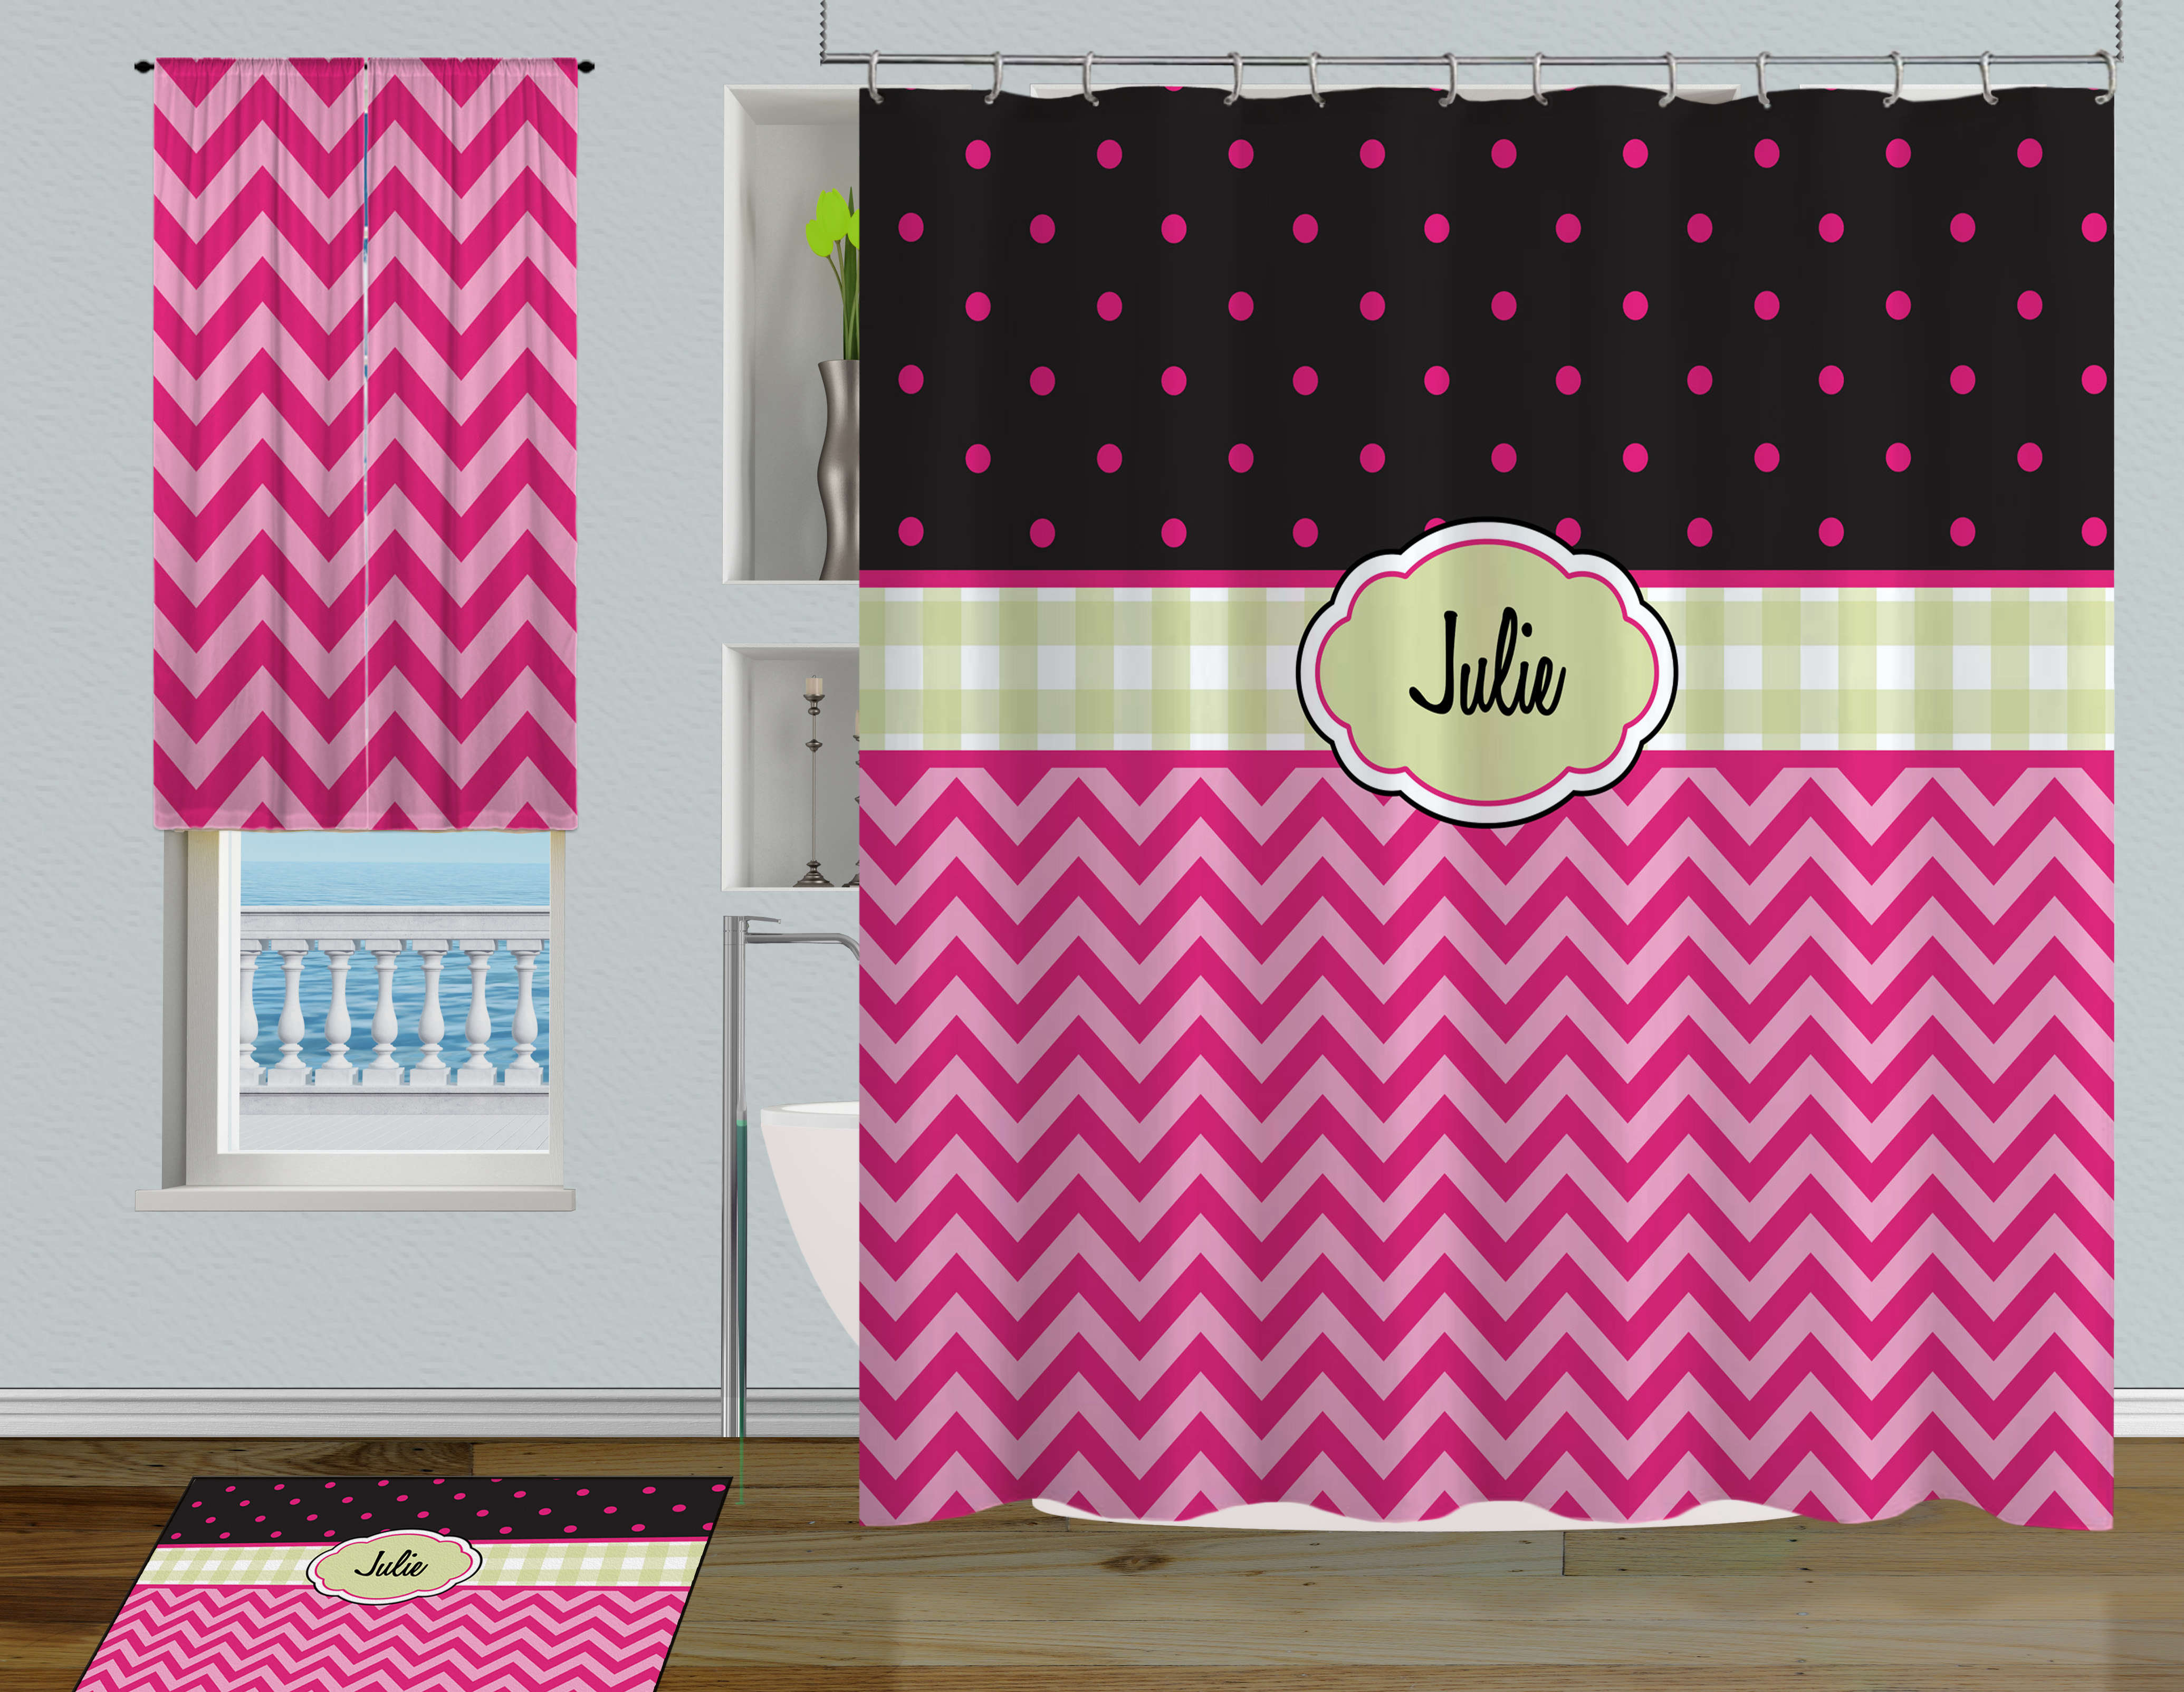 pink and green polka dot children 39 s shower curtain with chevron printed pattern 73 eloquent. Black Bedroom Furniture Sets. Home Design Ideas